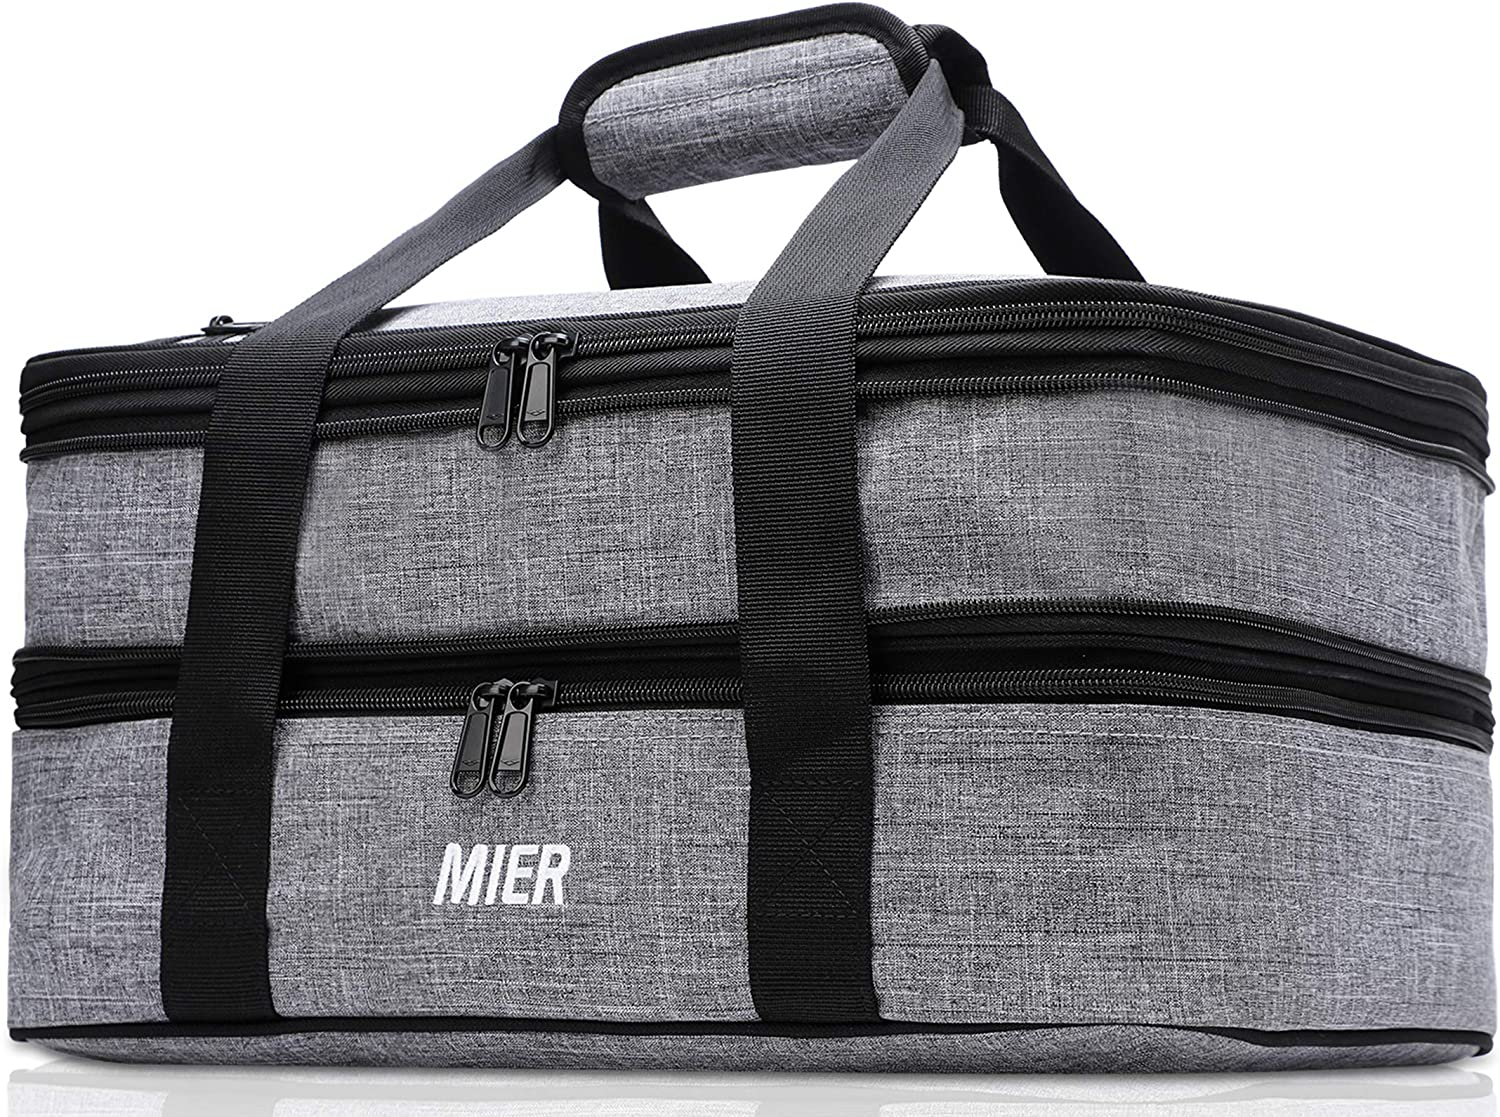 MIER Insulated Double Casserole Carrier Thermal Lunch Tote for Potluck Parties, Picnic, Beach, Fits 9 x 13 Inches Casserole Dish, Expandable, Gray